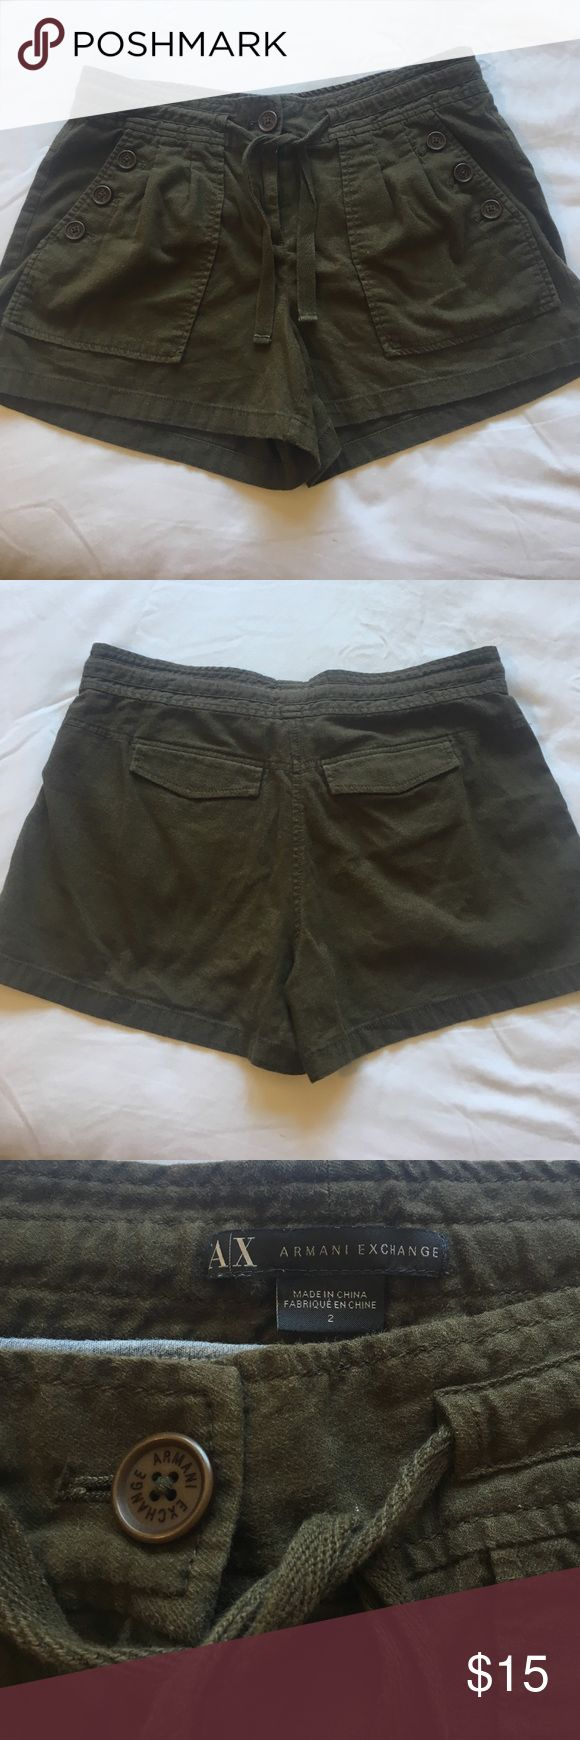 Armani Exchange Shorts Lightweight, very soft and comfortable 70% continues 20% polyester 10% lyocell. Used but still in good condition no holes or stains. A/X Armani Exchange Shorts